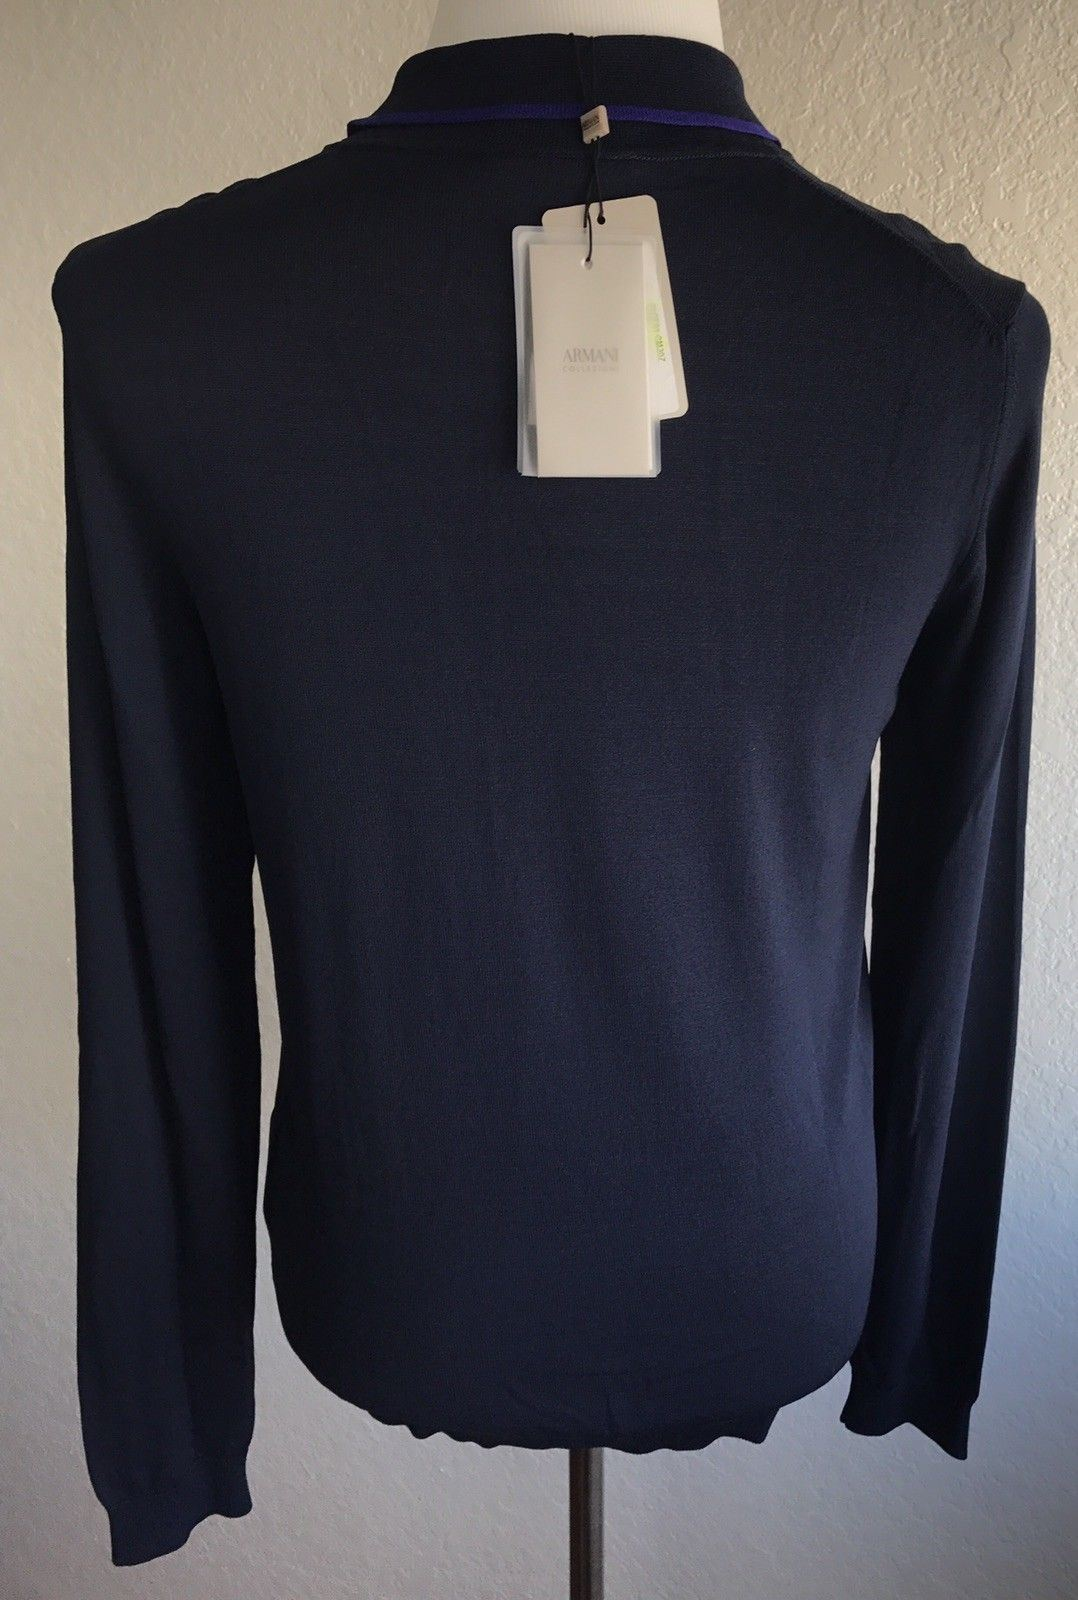 27327945b NWT $495 Armani Collezioni Blue Knit Polo Long Sleeve Sweater XL (56 EU)  3YCF01